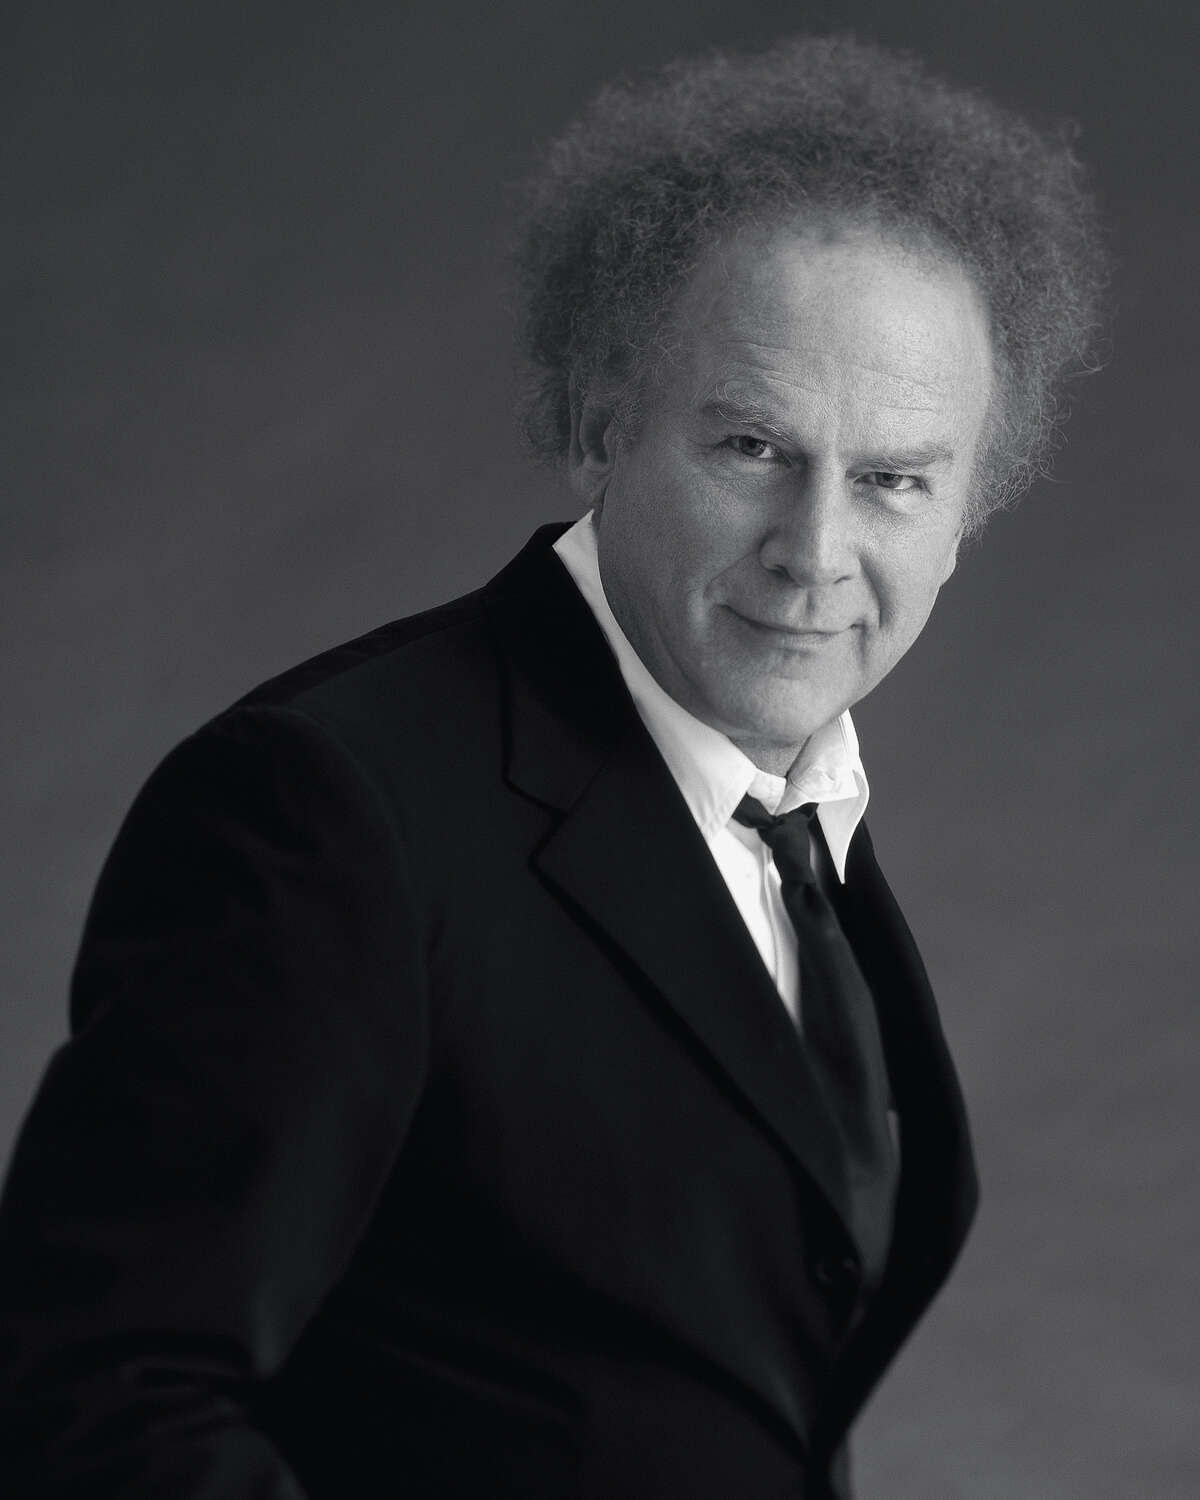 Art Garfunkel will perform in an intimate setting in Ridgefield, accompanied by just his guitar player Tab Laven. Besides music, the show will a question-and-answer session and some self-revealing readings by Garfunkel.